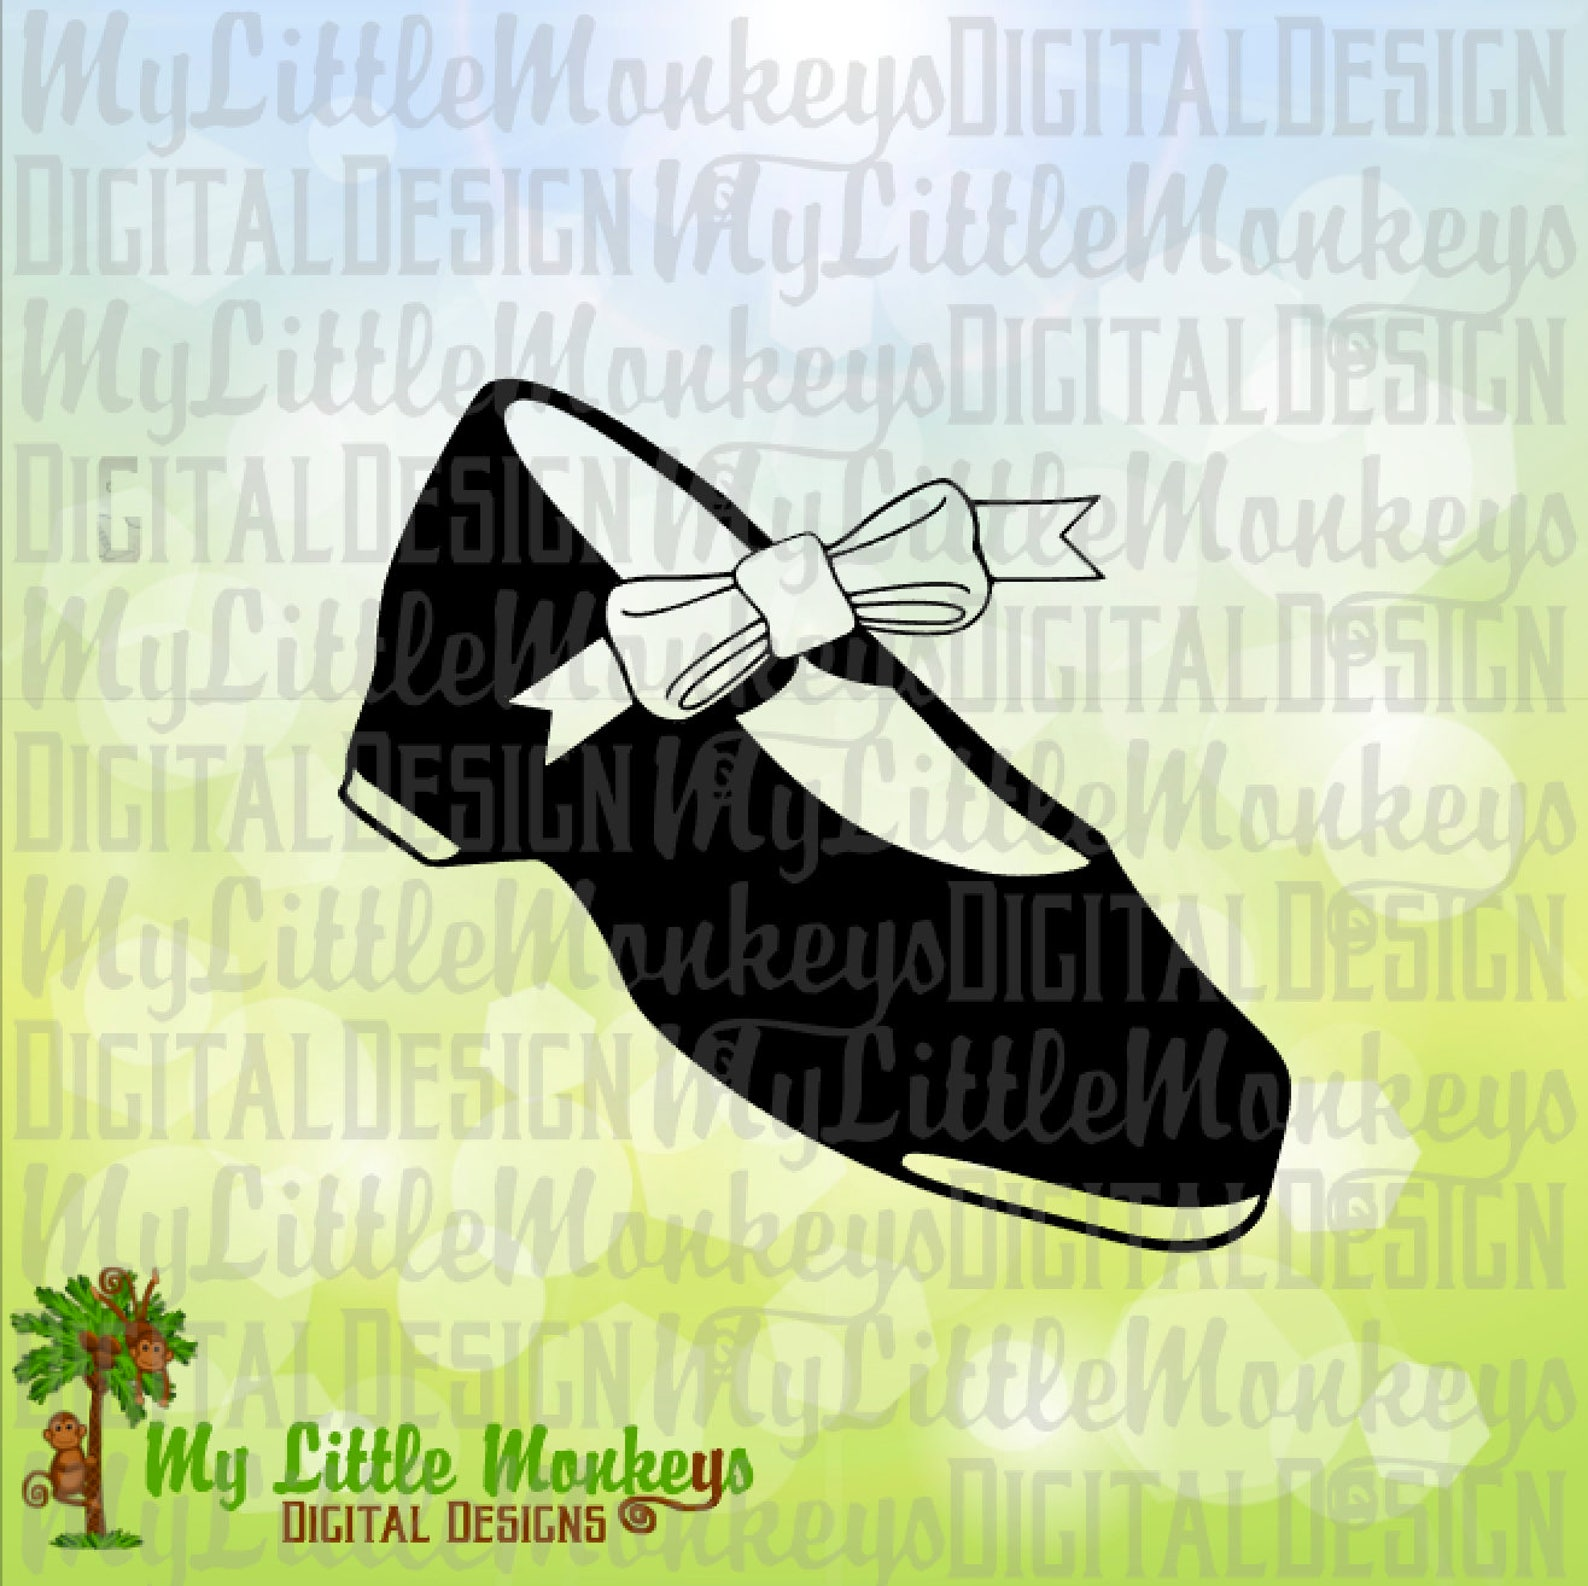 irish dance, tap, jazz and ballet dance shoes silhouette designs commercial use svg cut file and clipart instant download